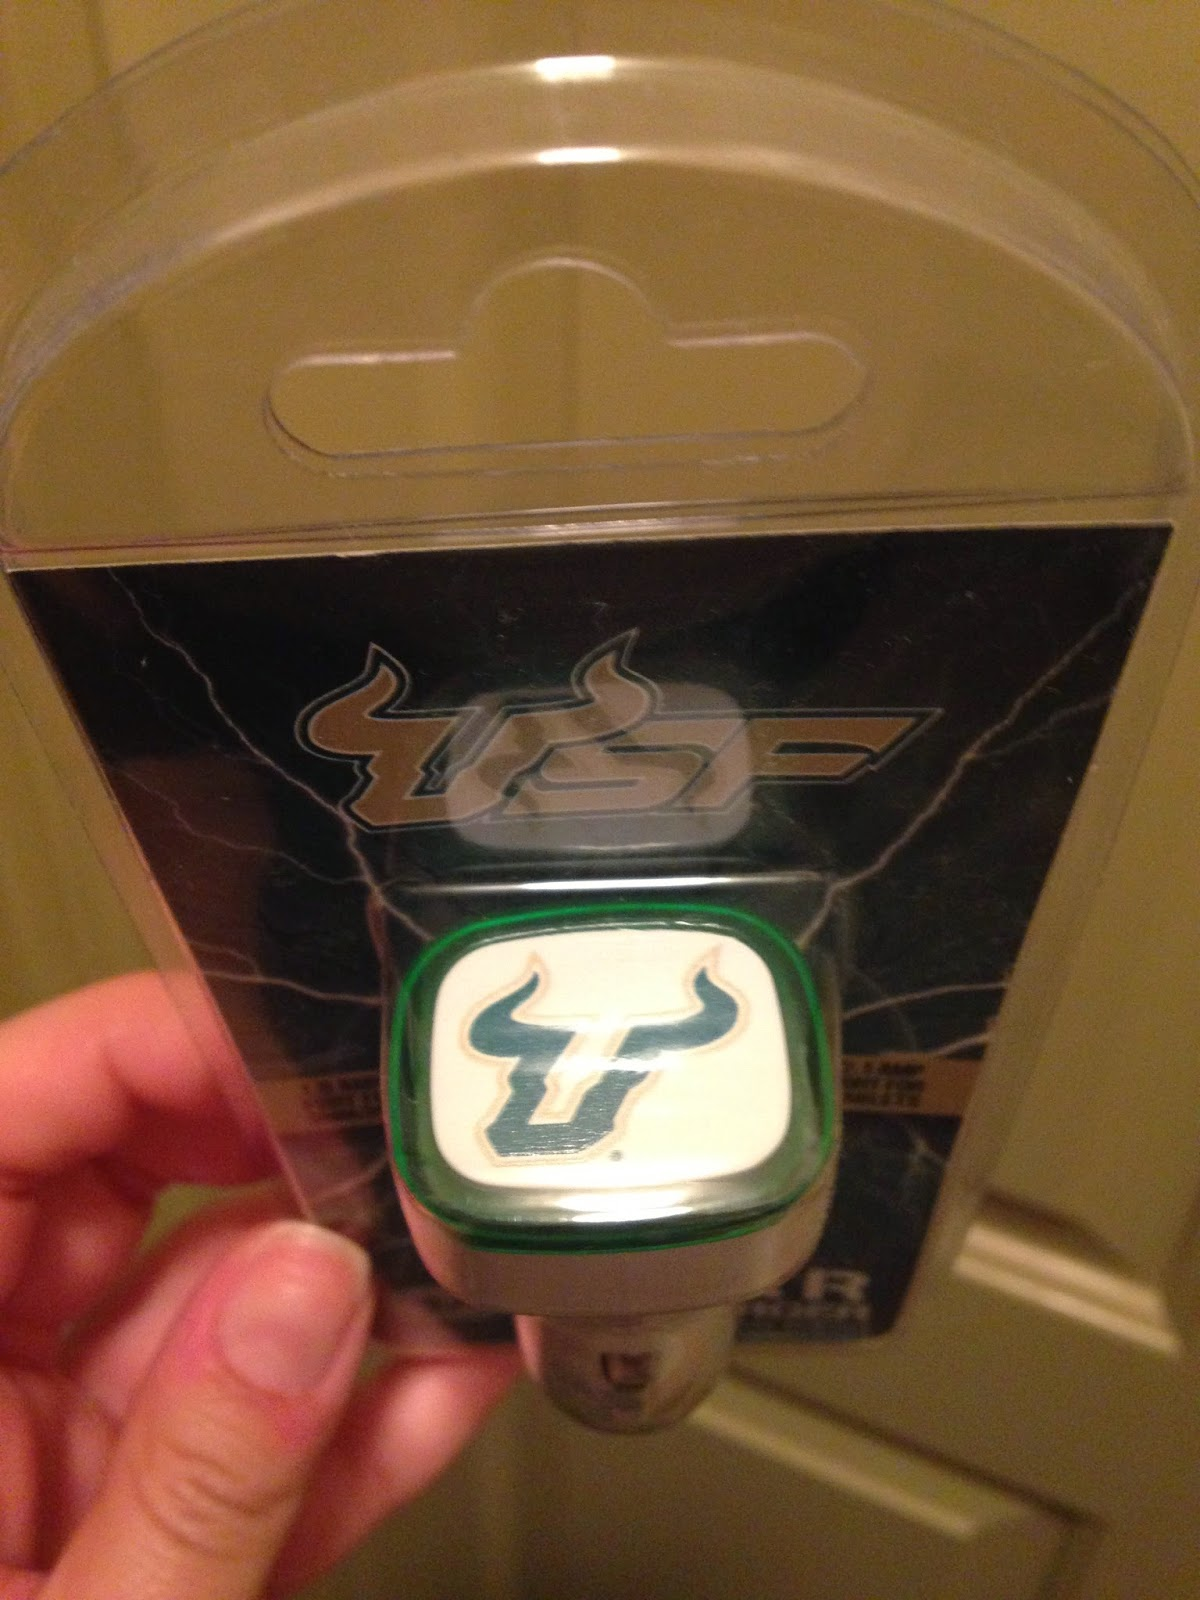 USF car charger